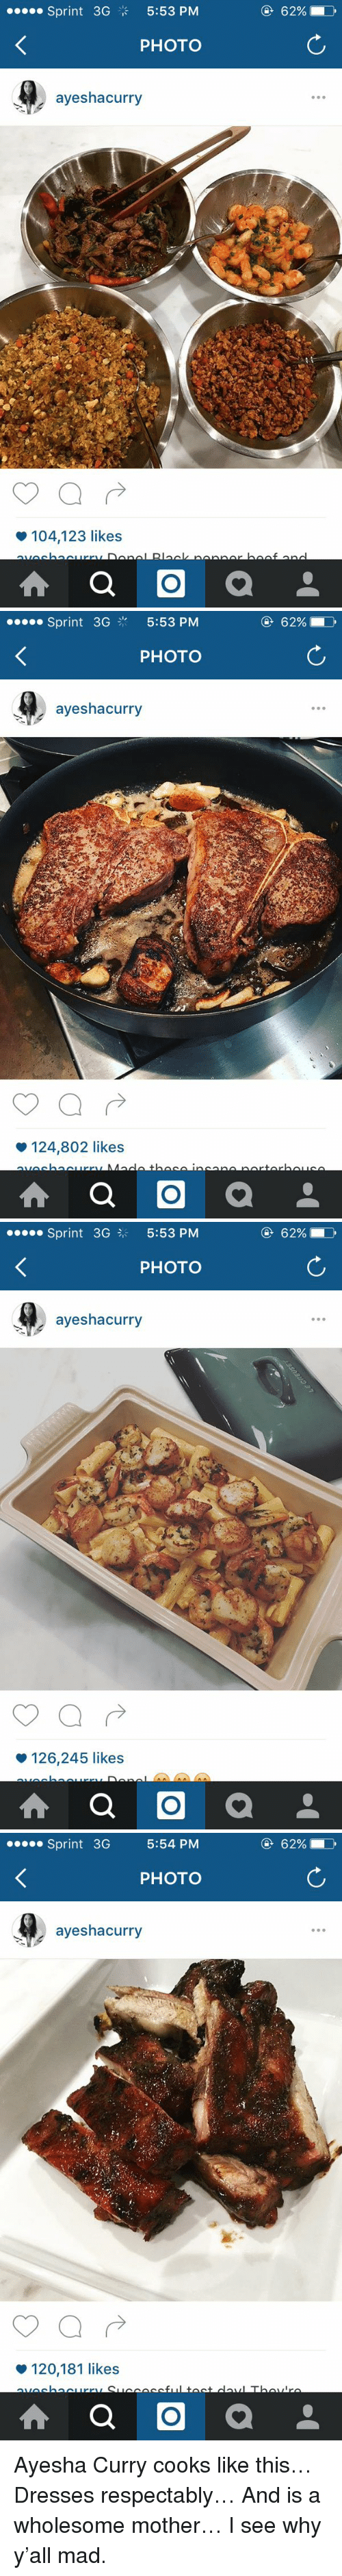 Ayesha Curry: Sprint 3G  5:53 PM  PHOTO  ayeshacurry  104,123 likes  A a O  a  62% D   Sprint 3G  5:53 PM  PHOTO  ayeshacurry  124,802 likes  A a O  a  62% D   Sprint 3G 3 5:53 PM  PHOTO  ayeshacurry  126,245 likes  A a O  a  62%   Sprint 3G  5:54 PM  PHOTO  ayeshacurry  120,181 likes  A a O  a Ayesha Curry cooks like this… Dresses respectably… And is a wholesome mother… I see why y'all mad.